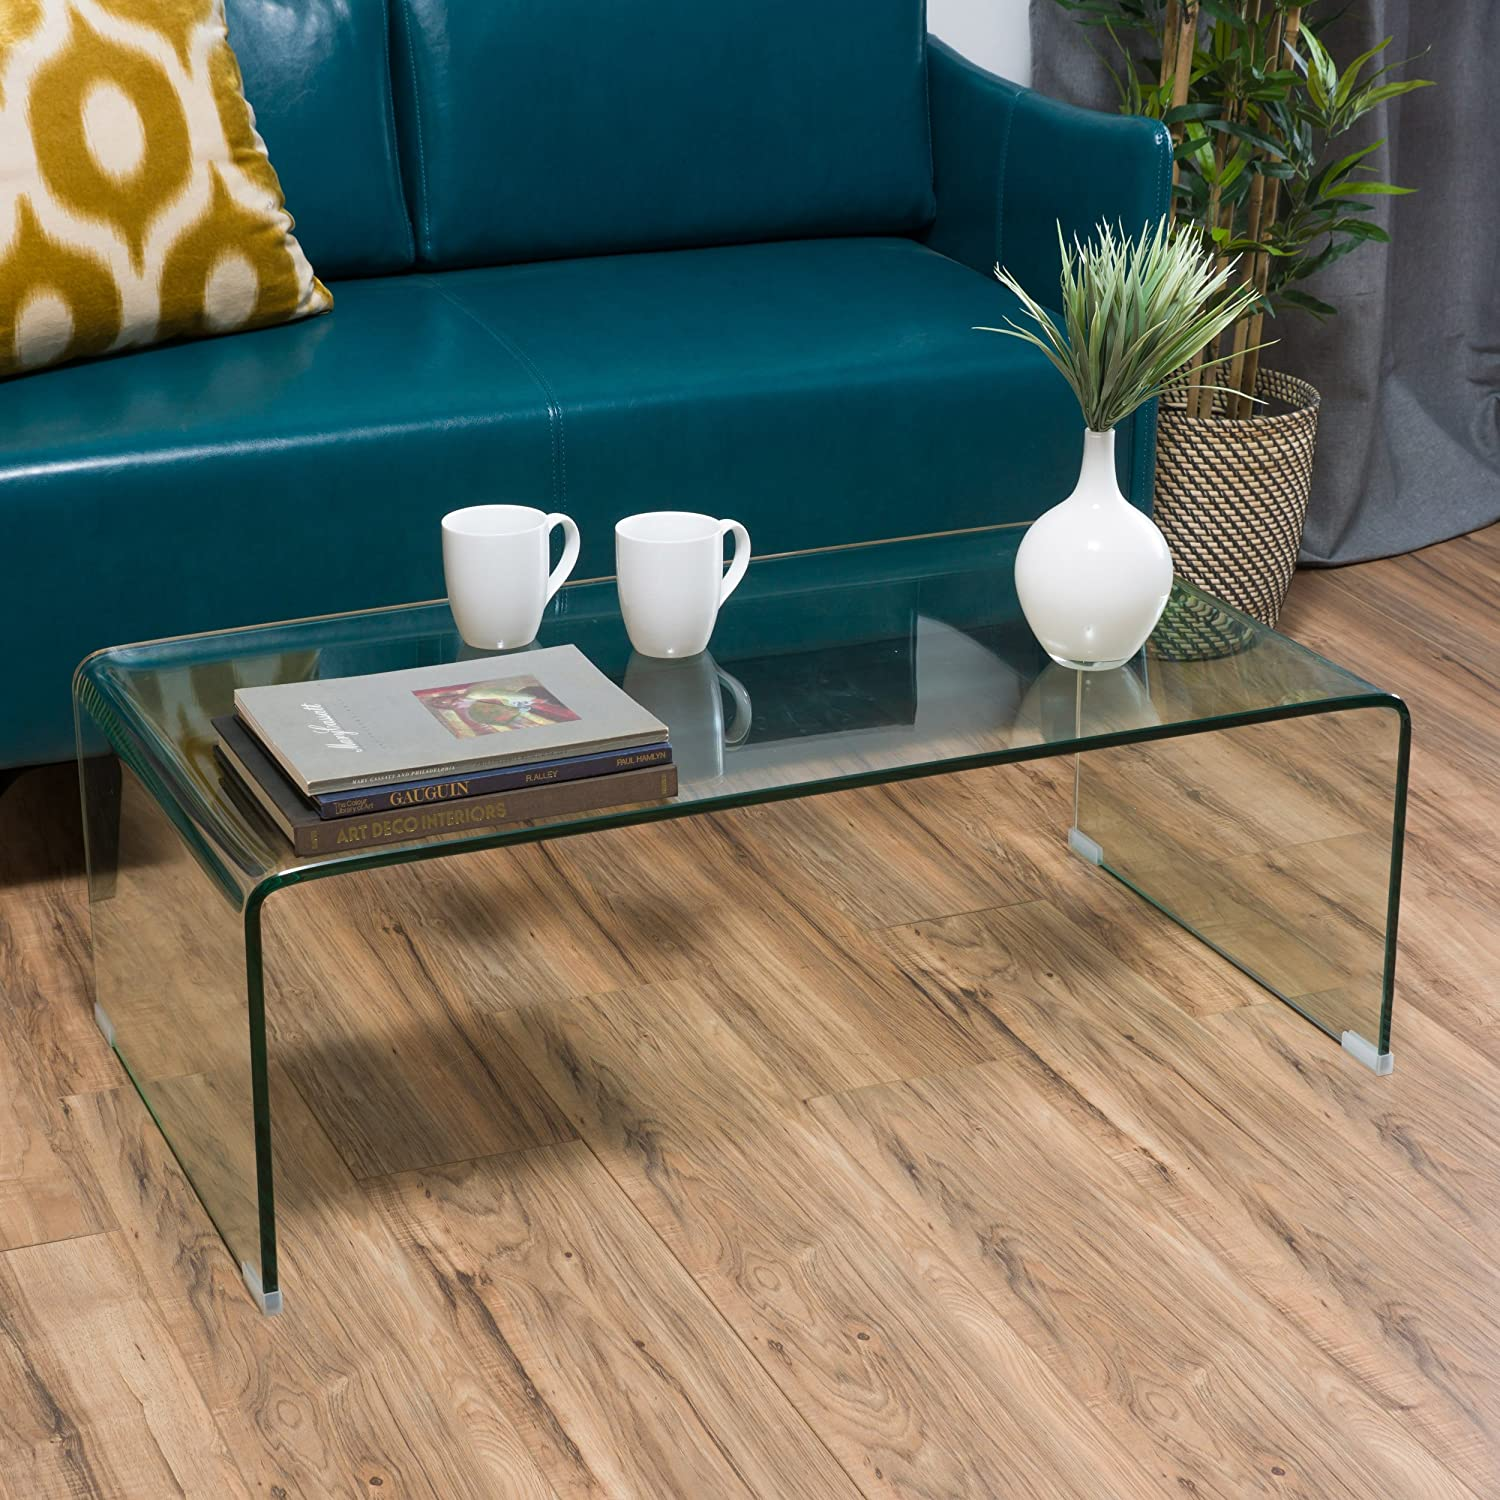 small rectangle coffee table. amazon.com: great deal furniture classon glass rectangle coffee table: kitchen \u0026 dining small table s